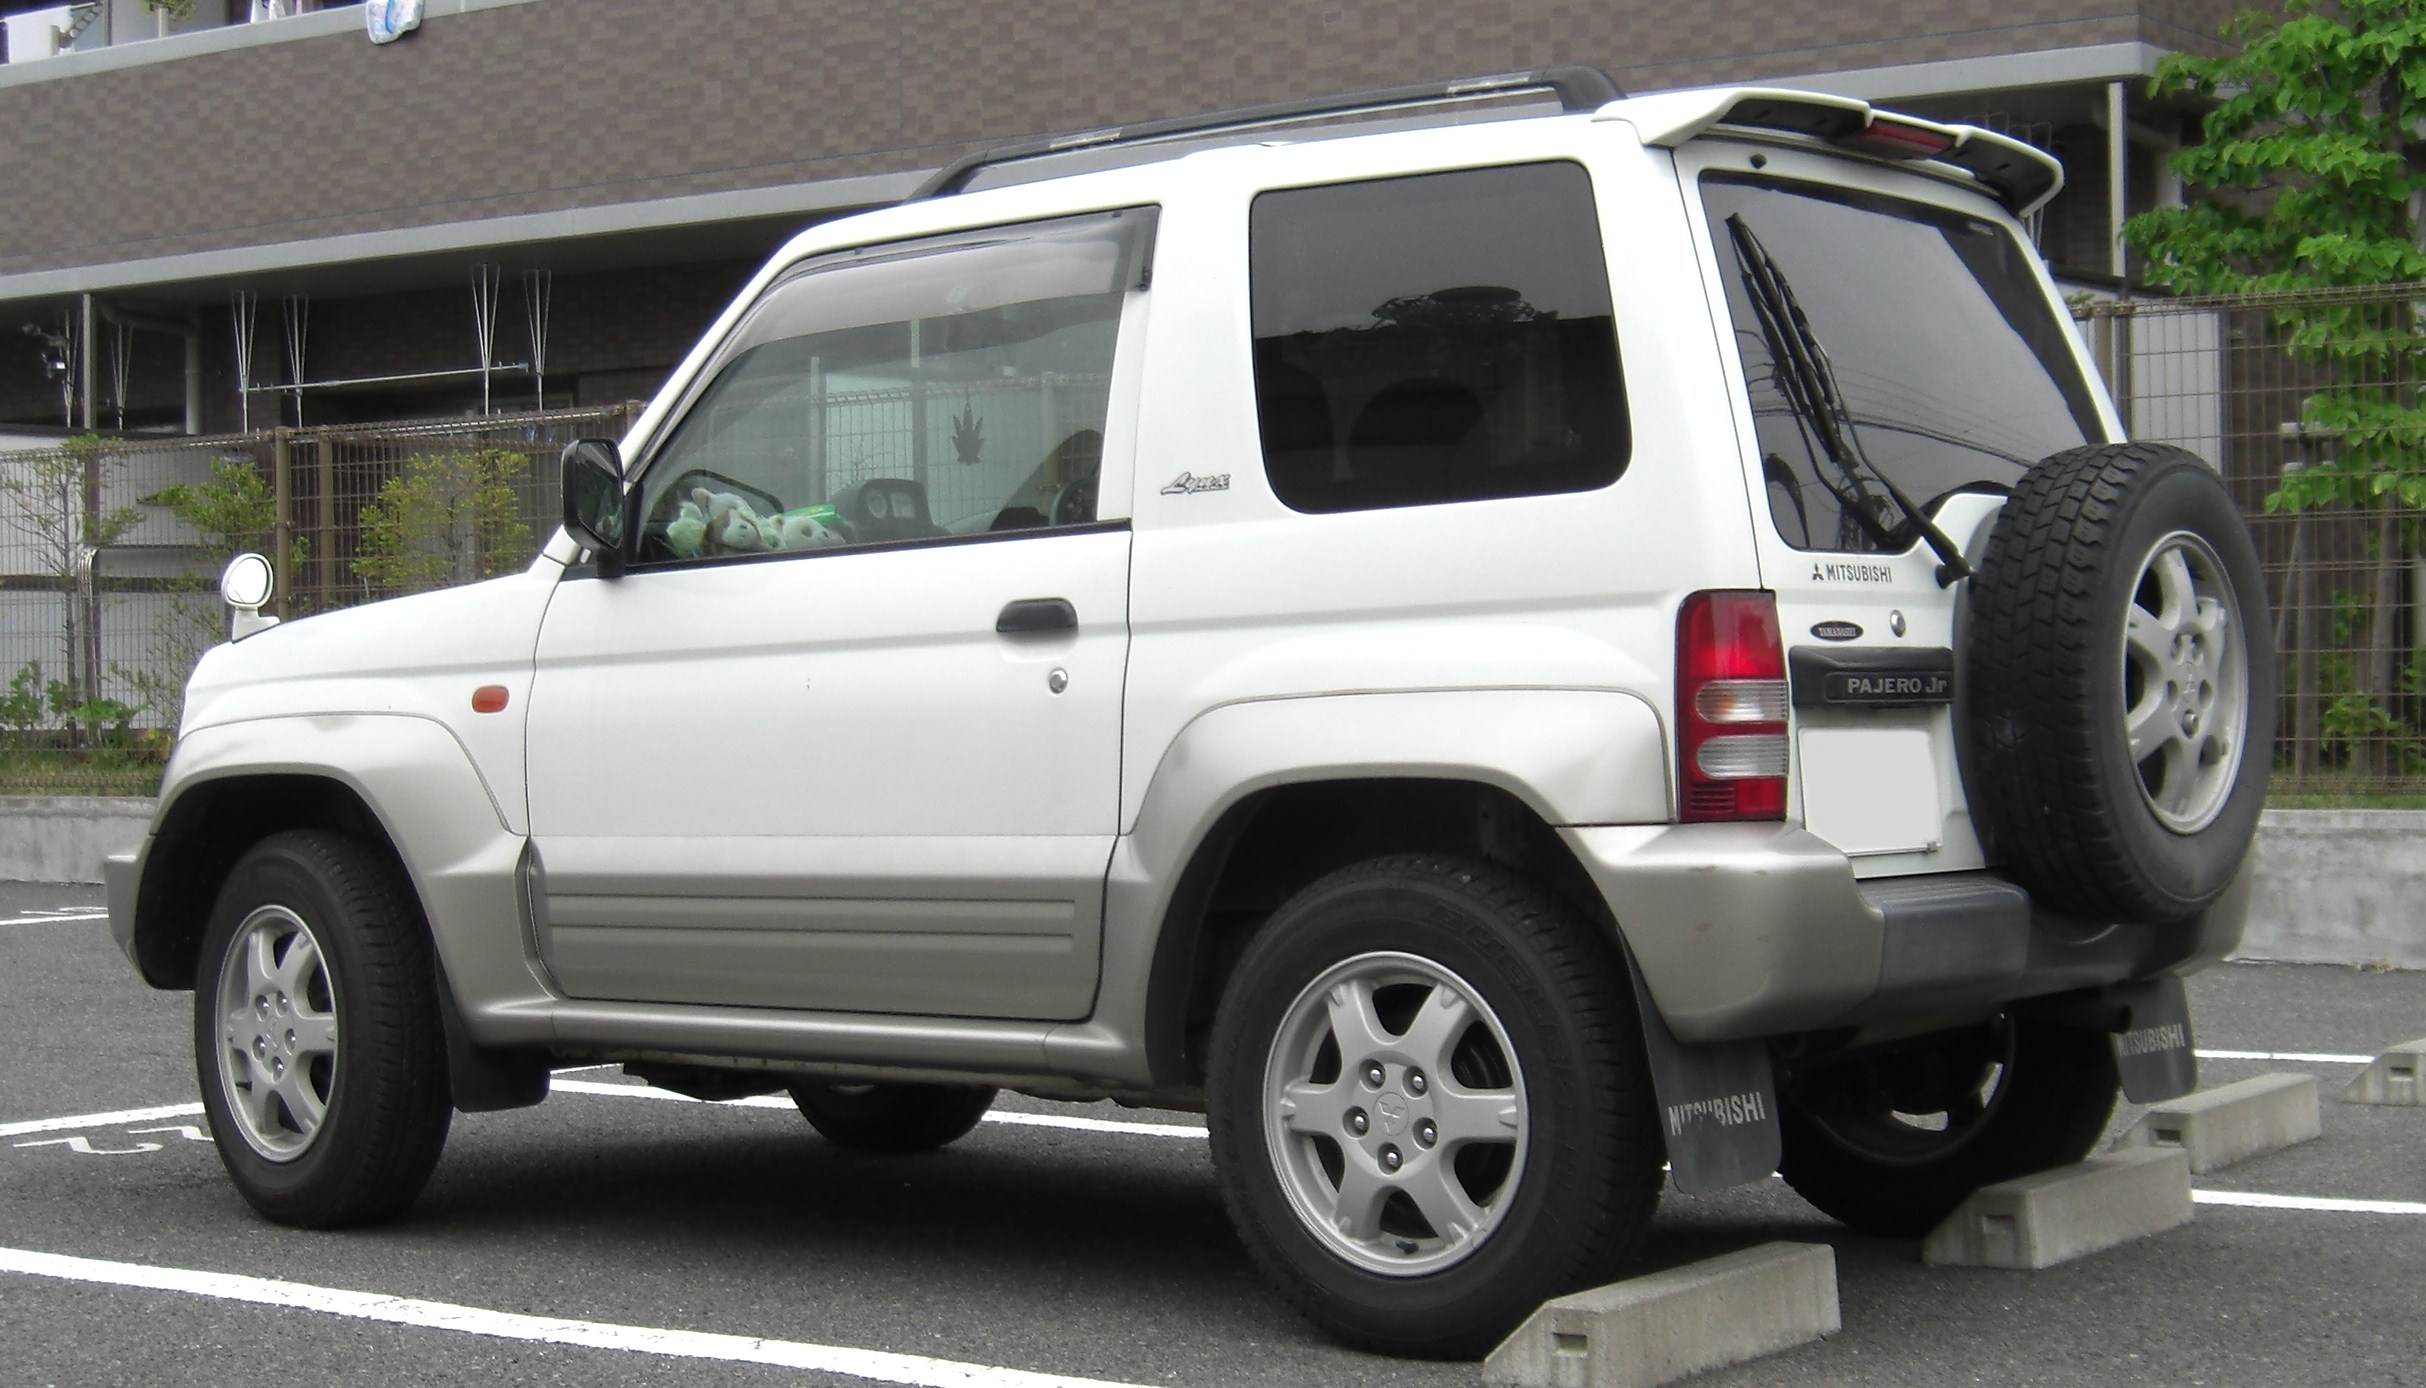 Description Mitsubishi Pajero Jr rear.jpg